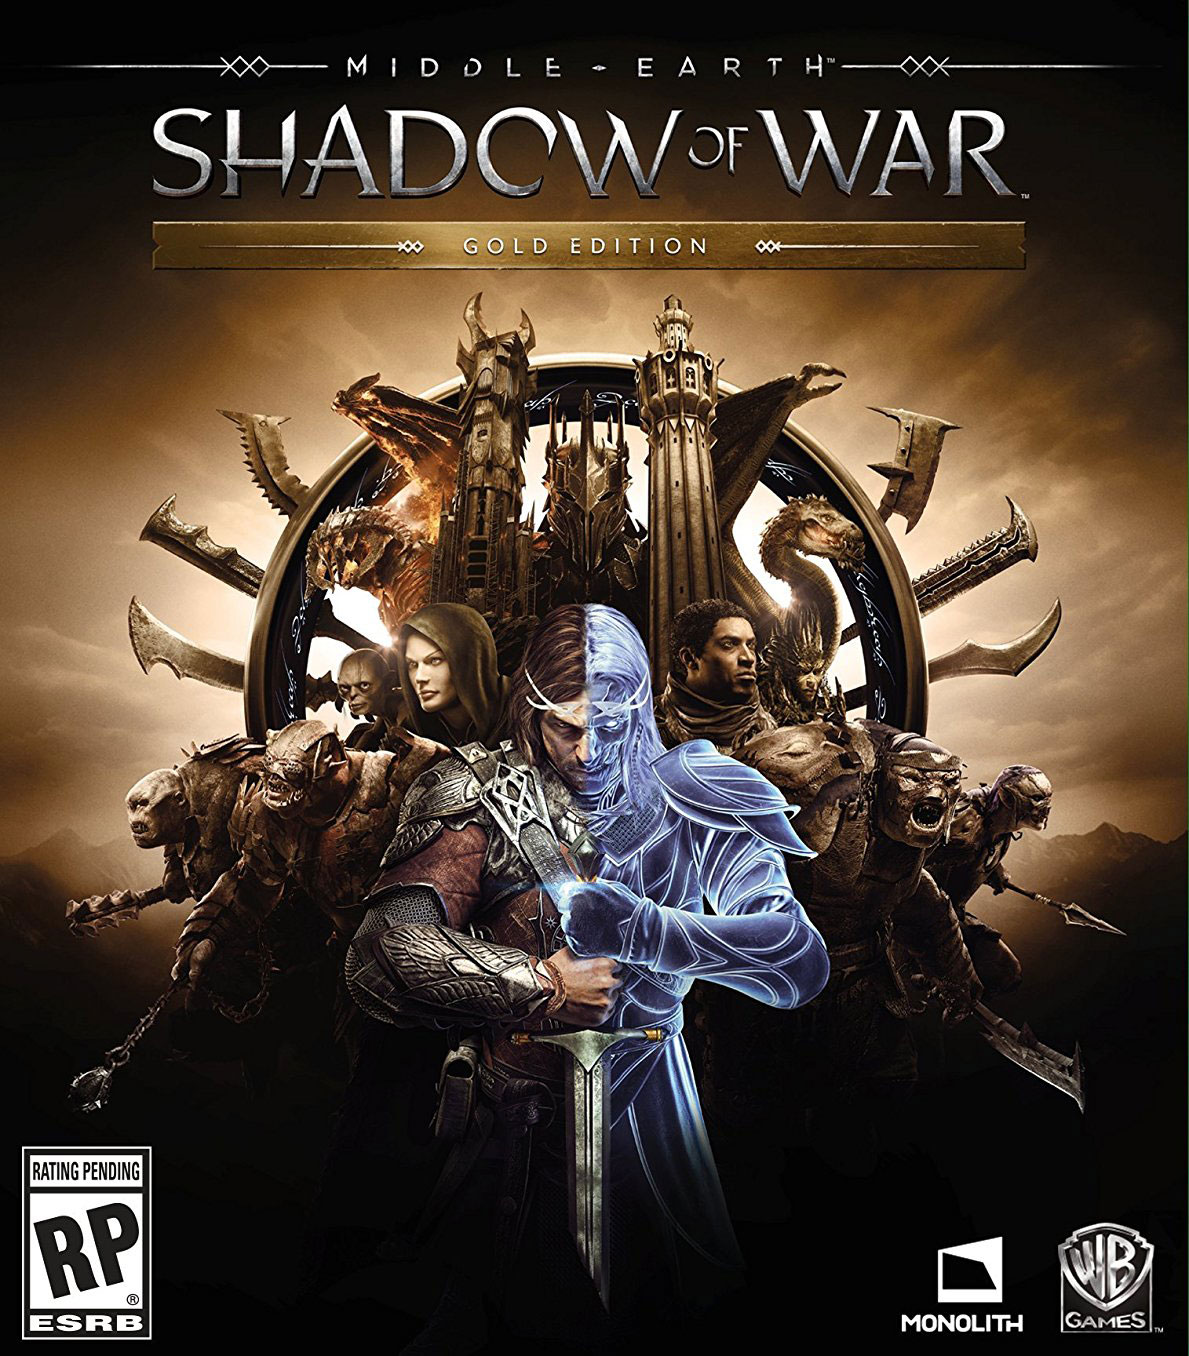 https://img5.downloadha.com/hosein/Game/October%202017/08/Middle-earth-Shadow-of-War-pc-cover-large.jpg